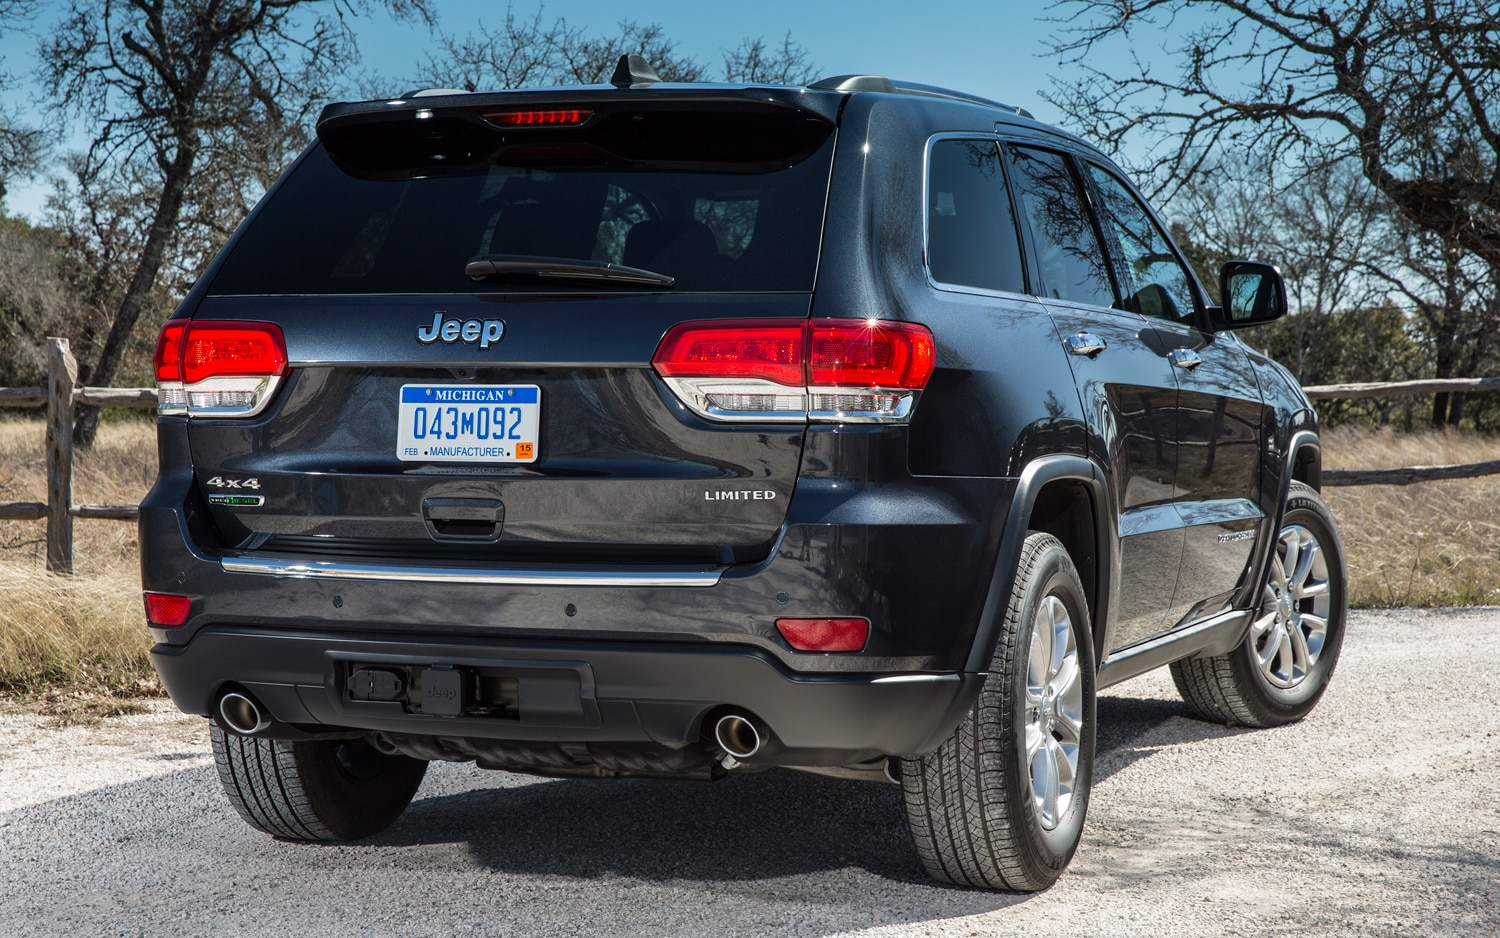 2014 Jeep Grand Cherokee Diesel Rear View